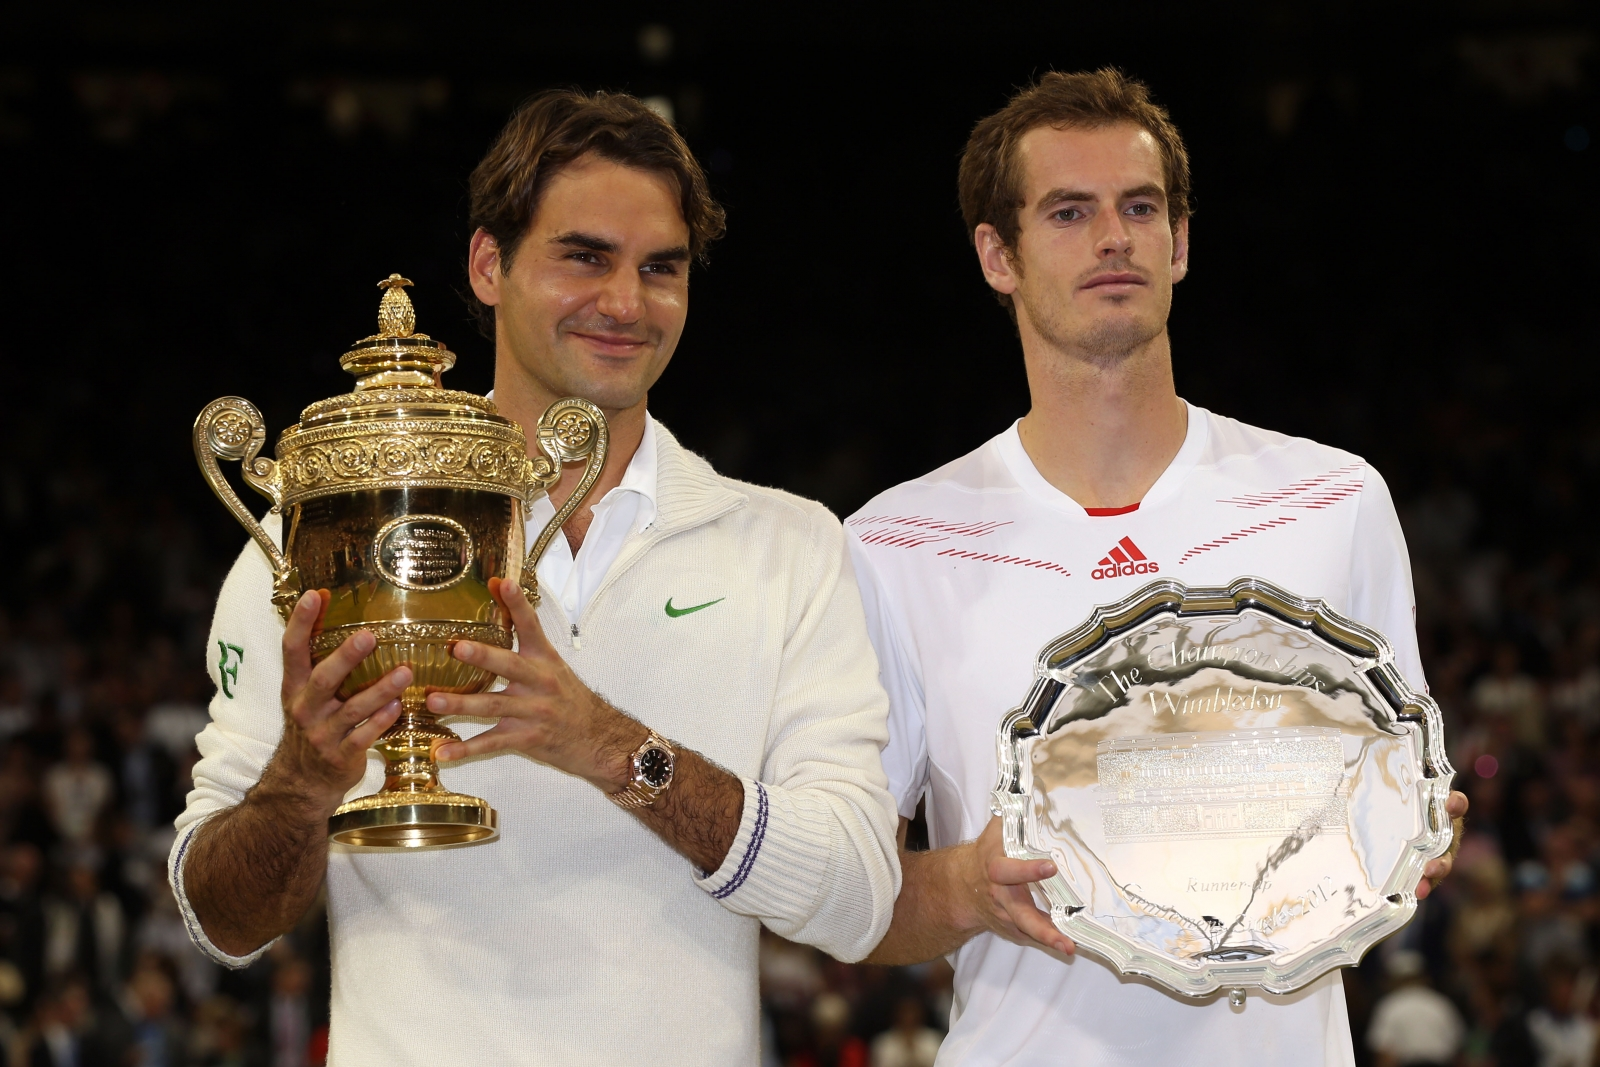 Roger Federer (left) and Andy Murray